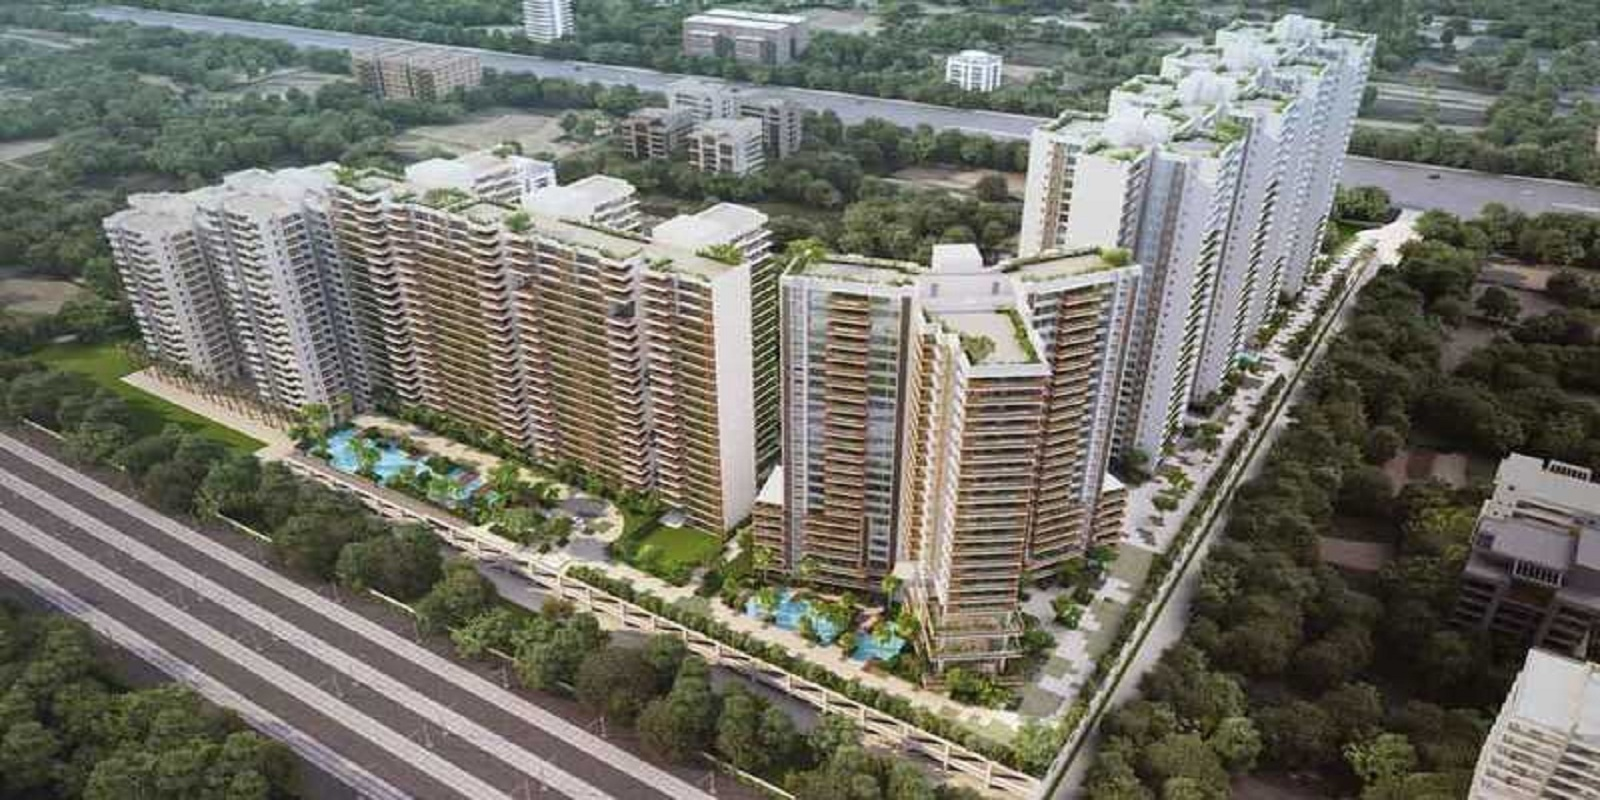 tower-view-Picture-the-wadhwa-the-address-3020891